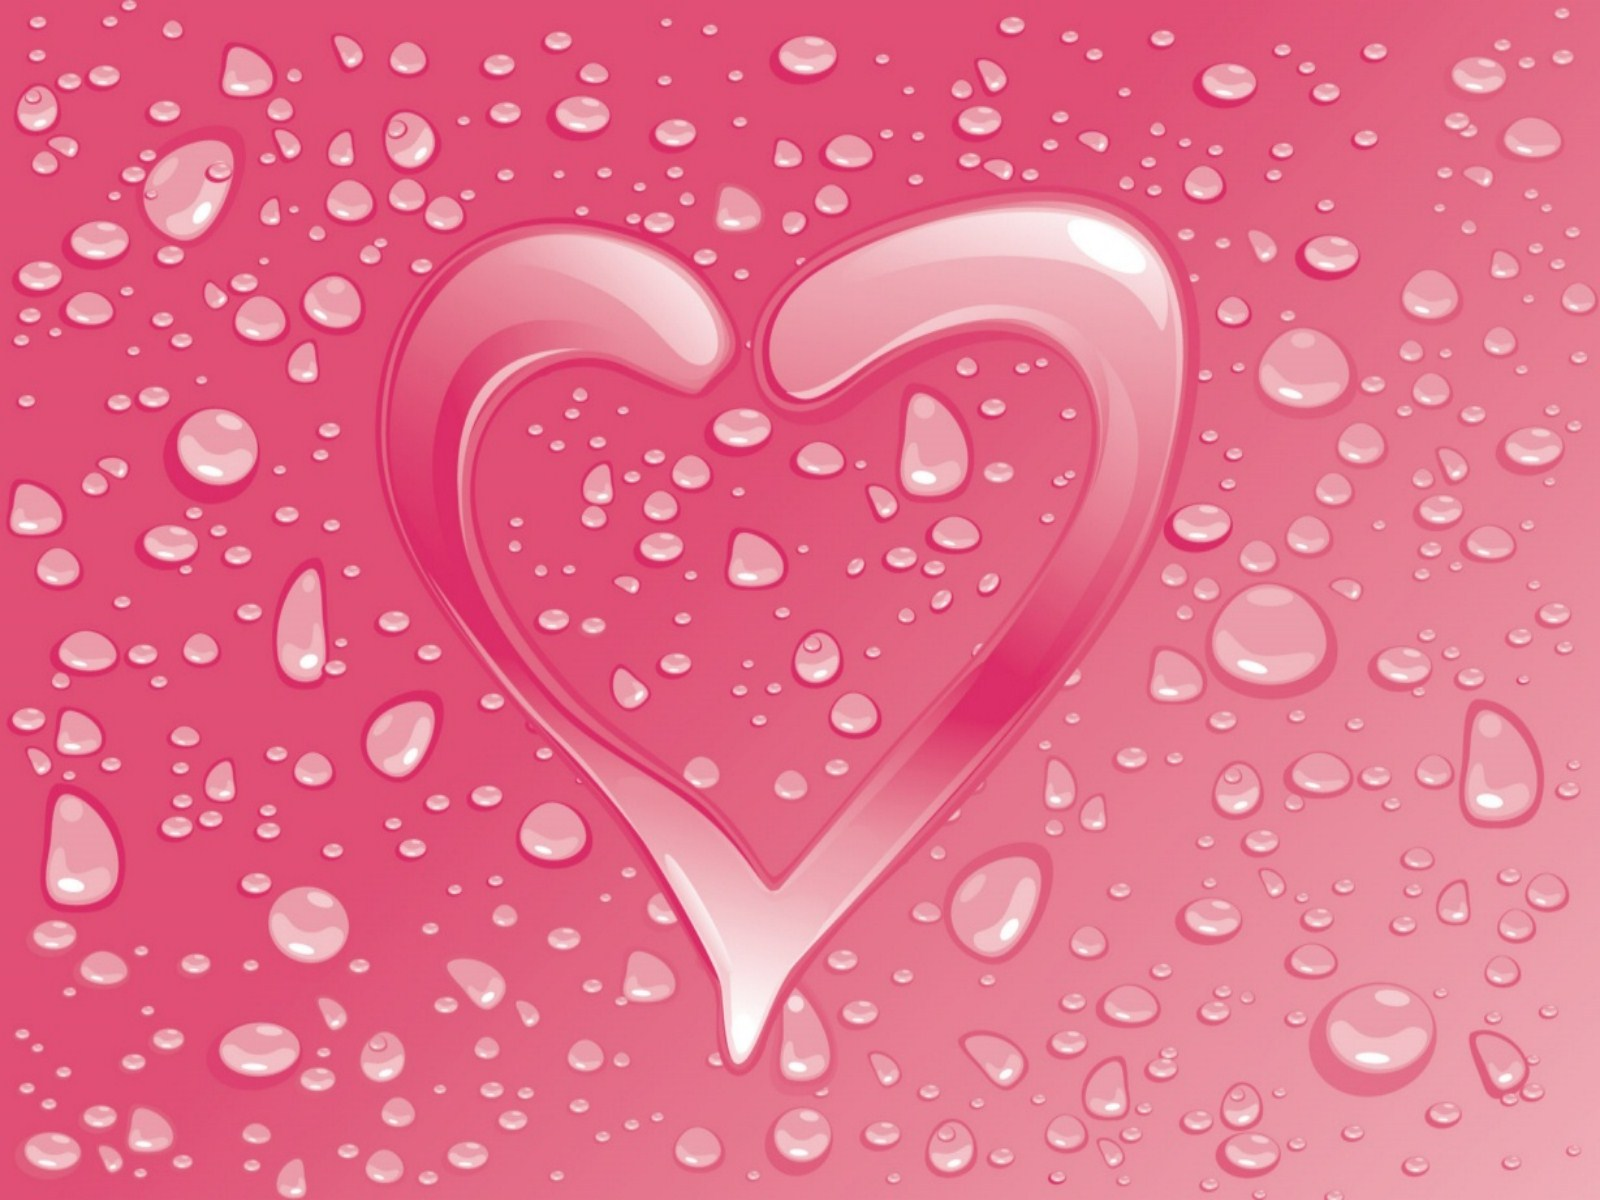 Google Valentine Wallpaper And Screensavers